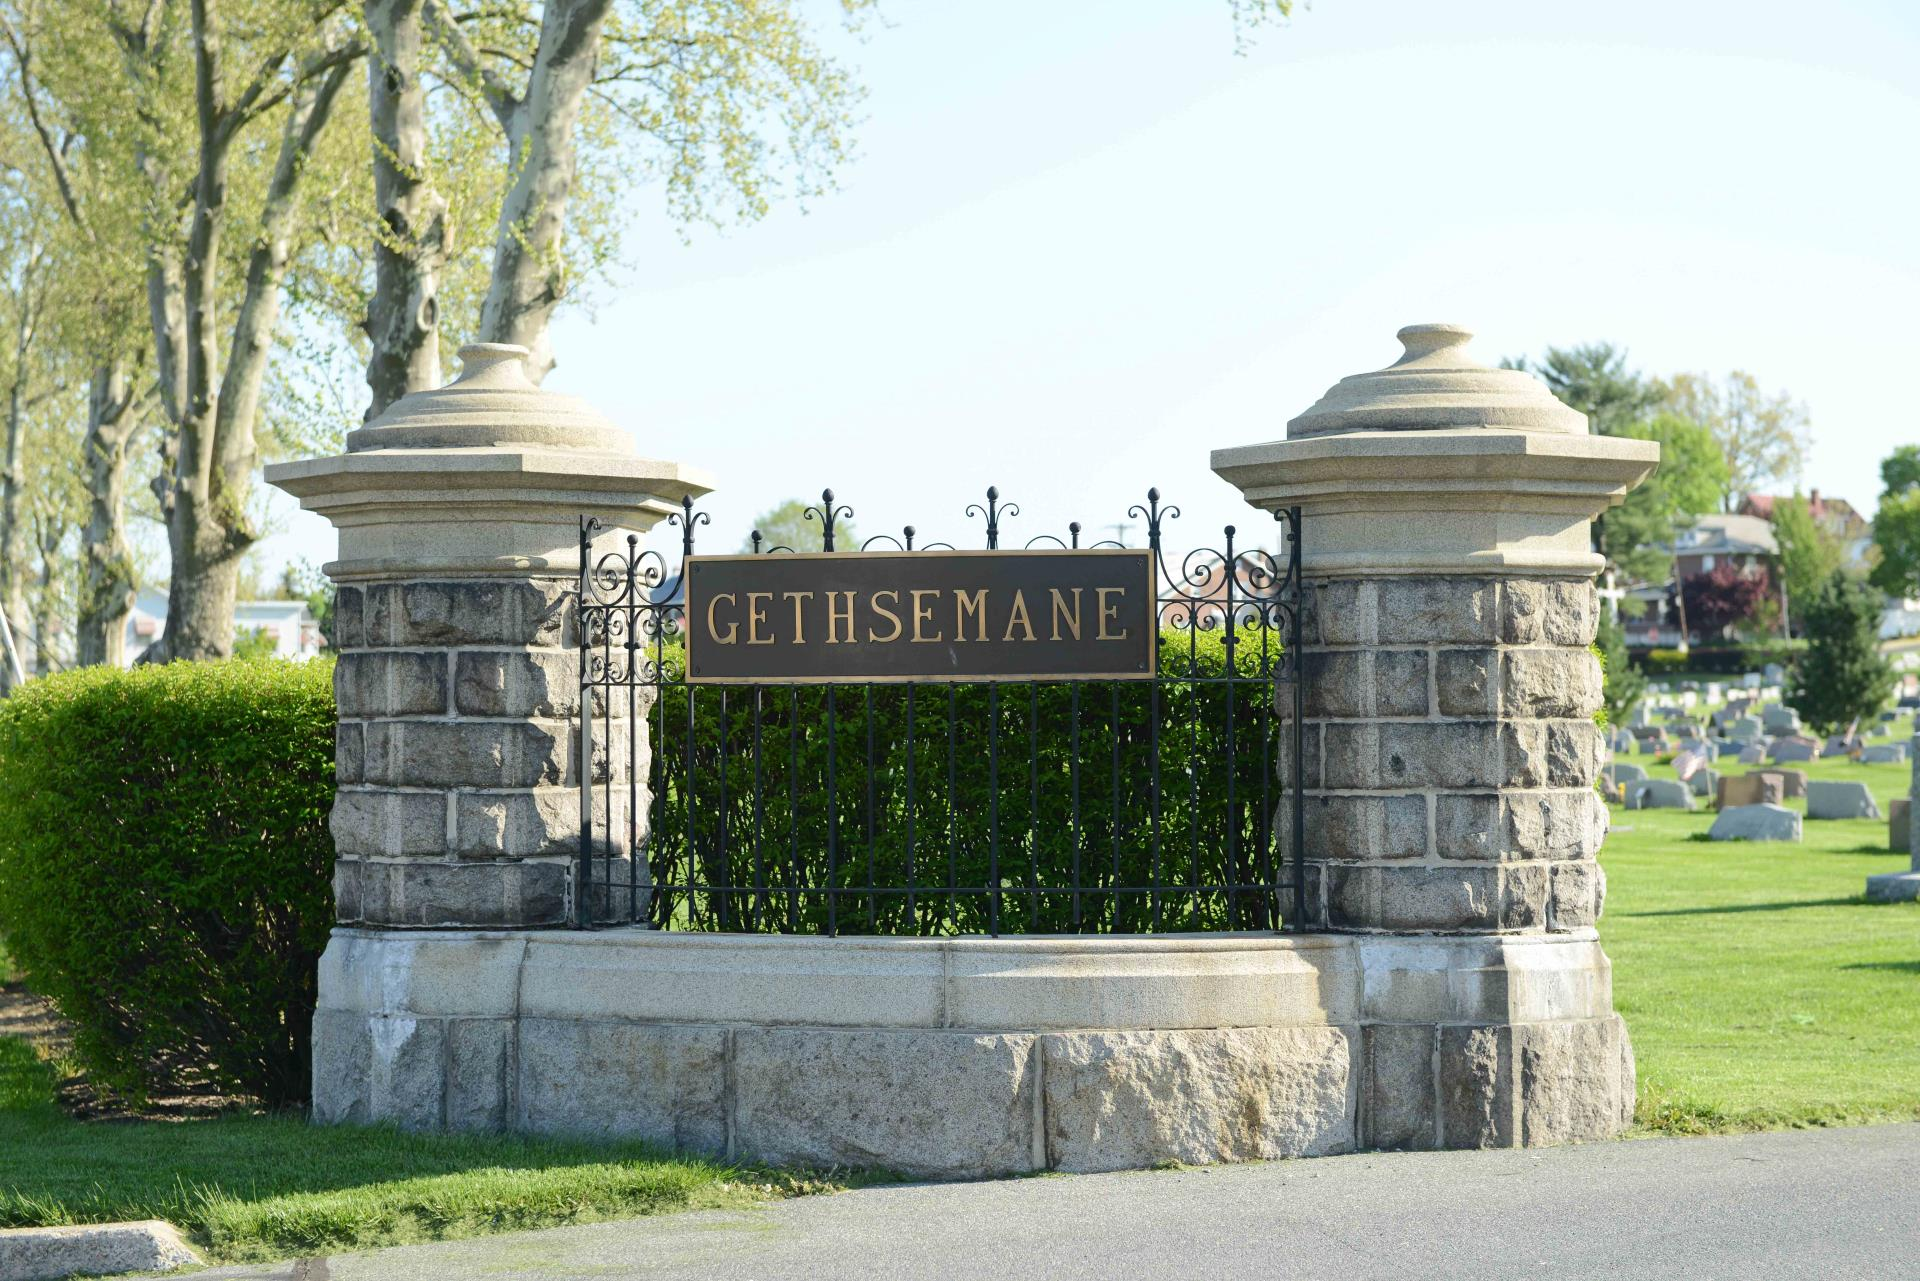 Gethsemane Cemetery entrance pillars with sign